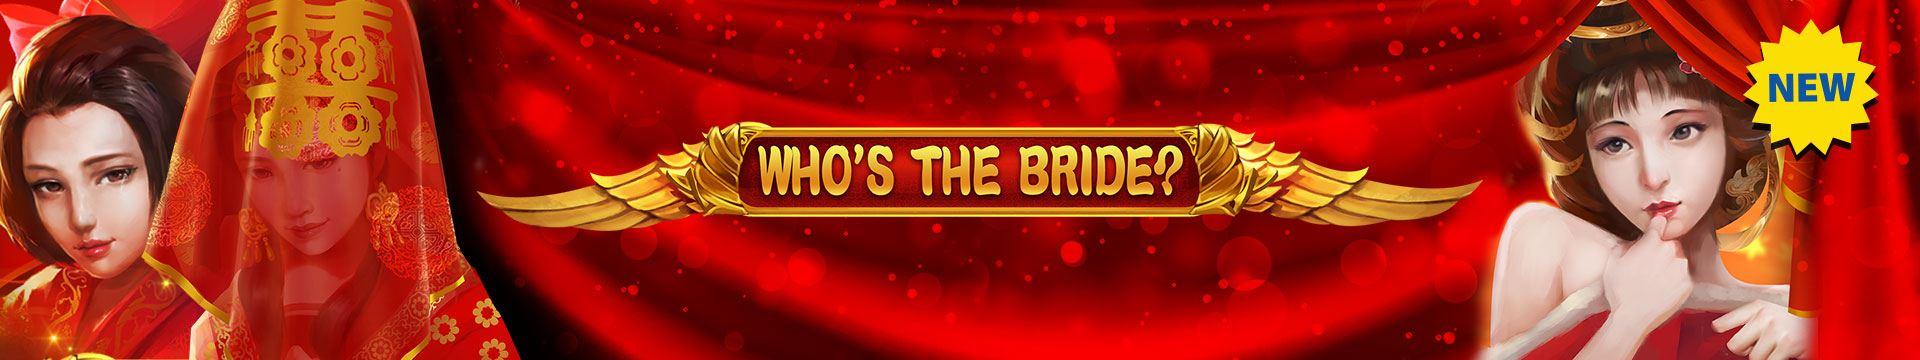 who_the_bride